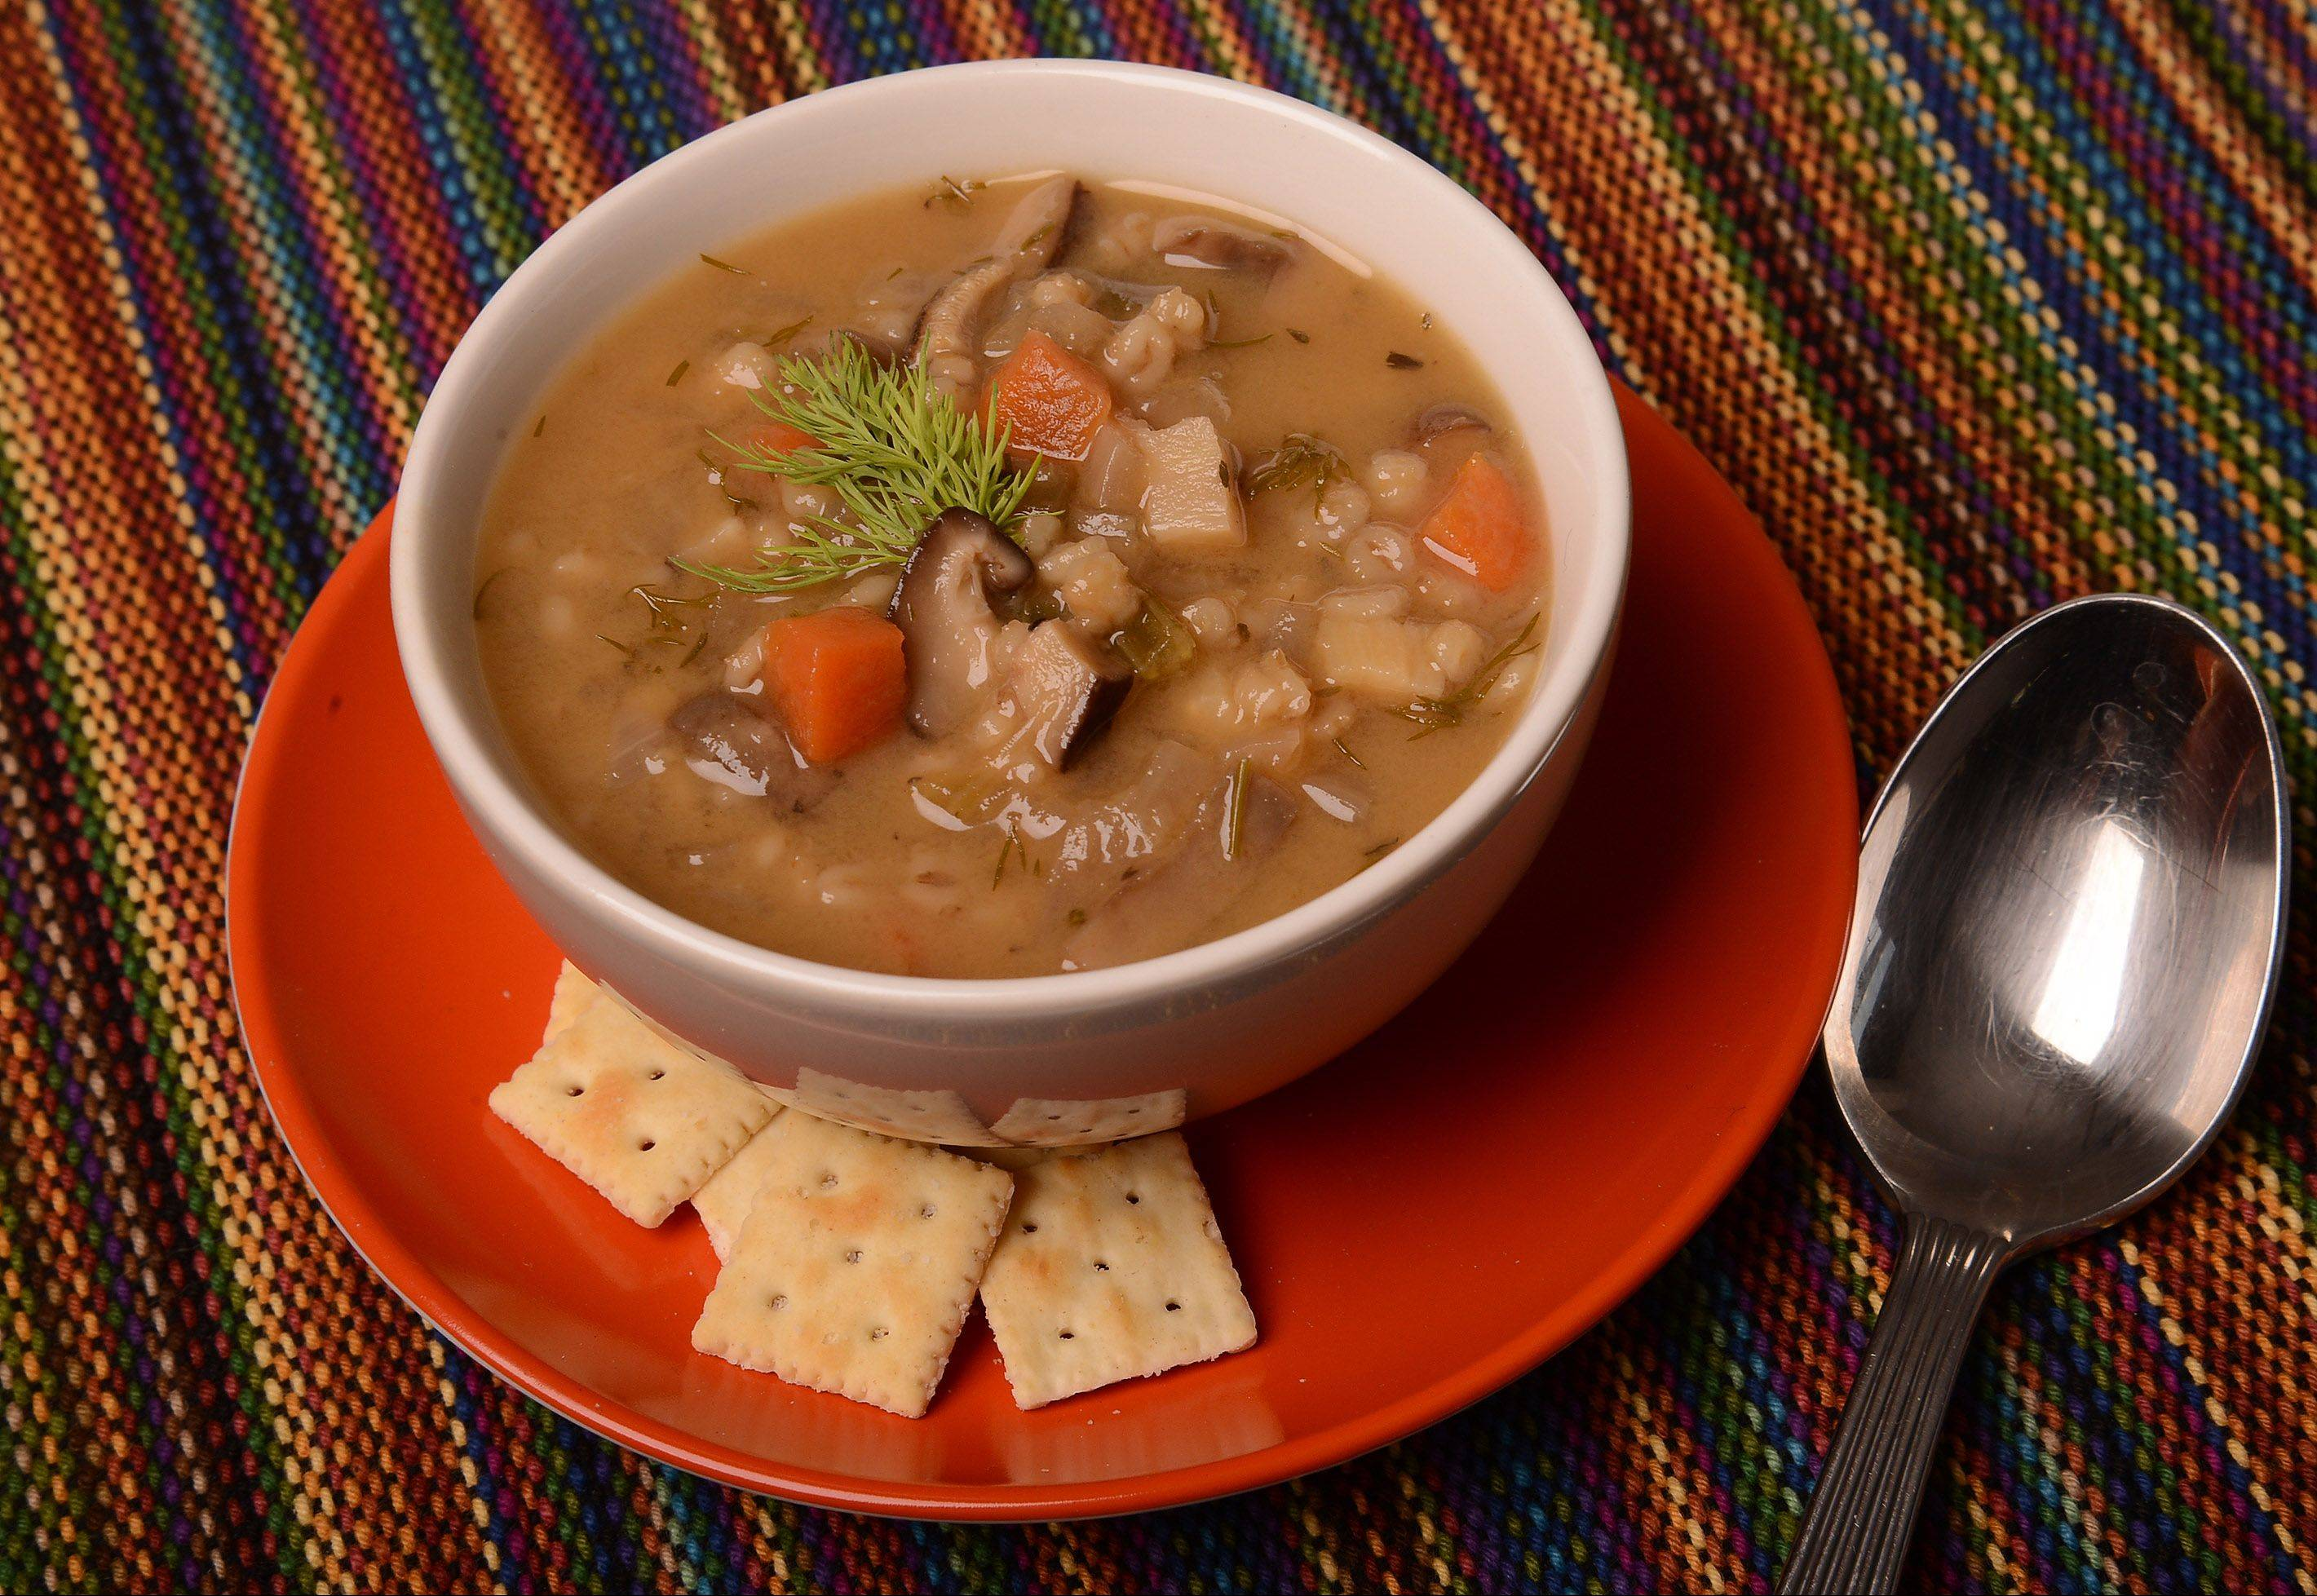 Mushroom Barley Soup made with dried mushrooms, carrots and parsnips is one of M. Eileen Brown's all-time favorite soups.